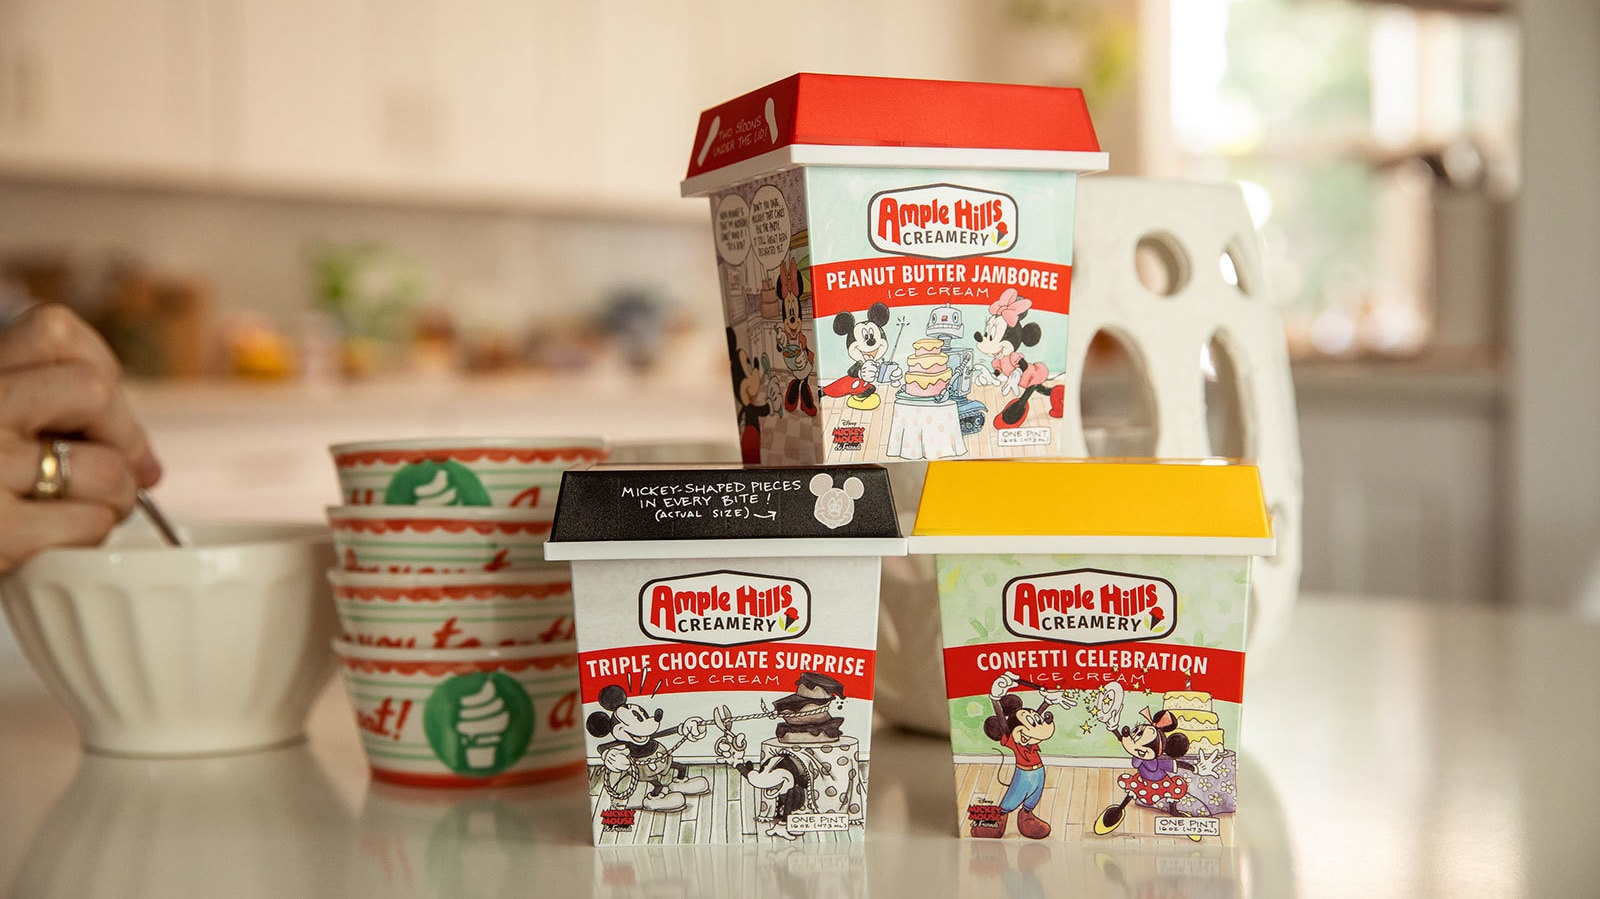 Sugarfina and Ample Hills Creamery Add a Sweet Surprise for Mickey's 90th